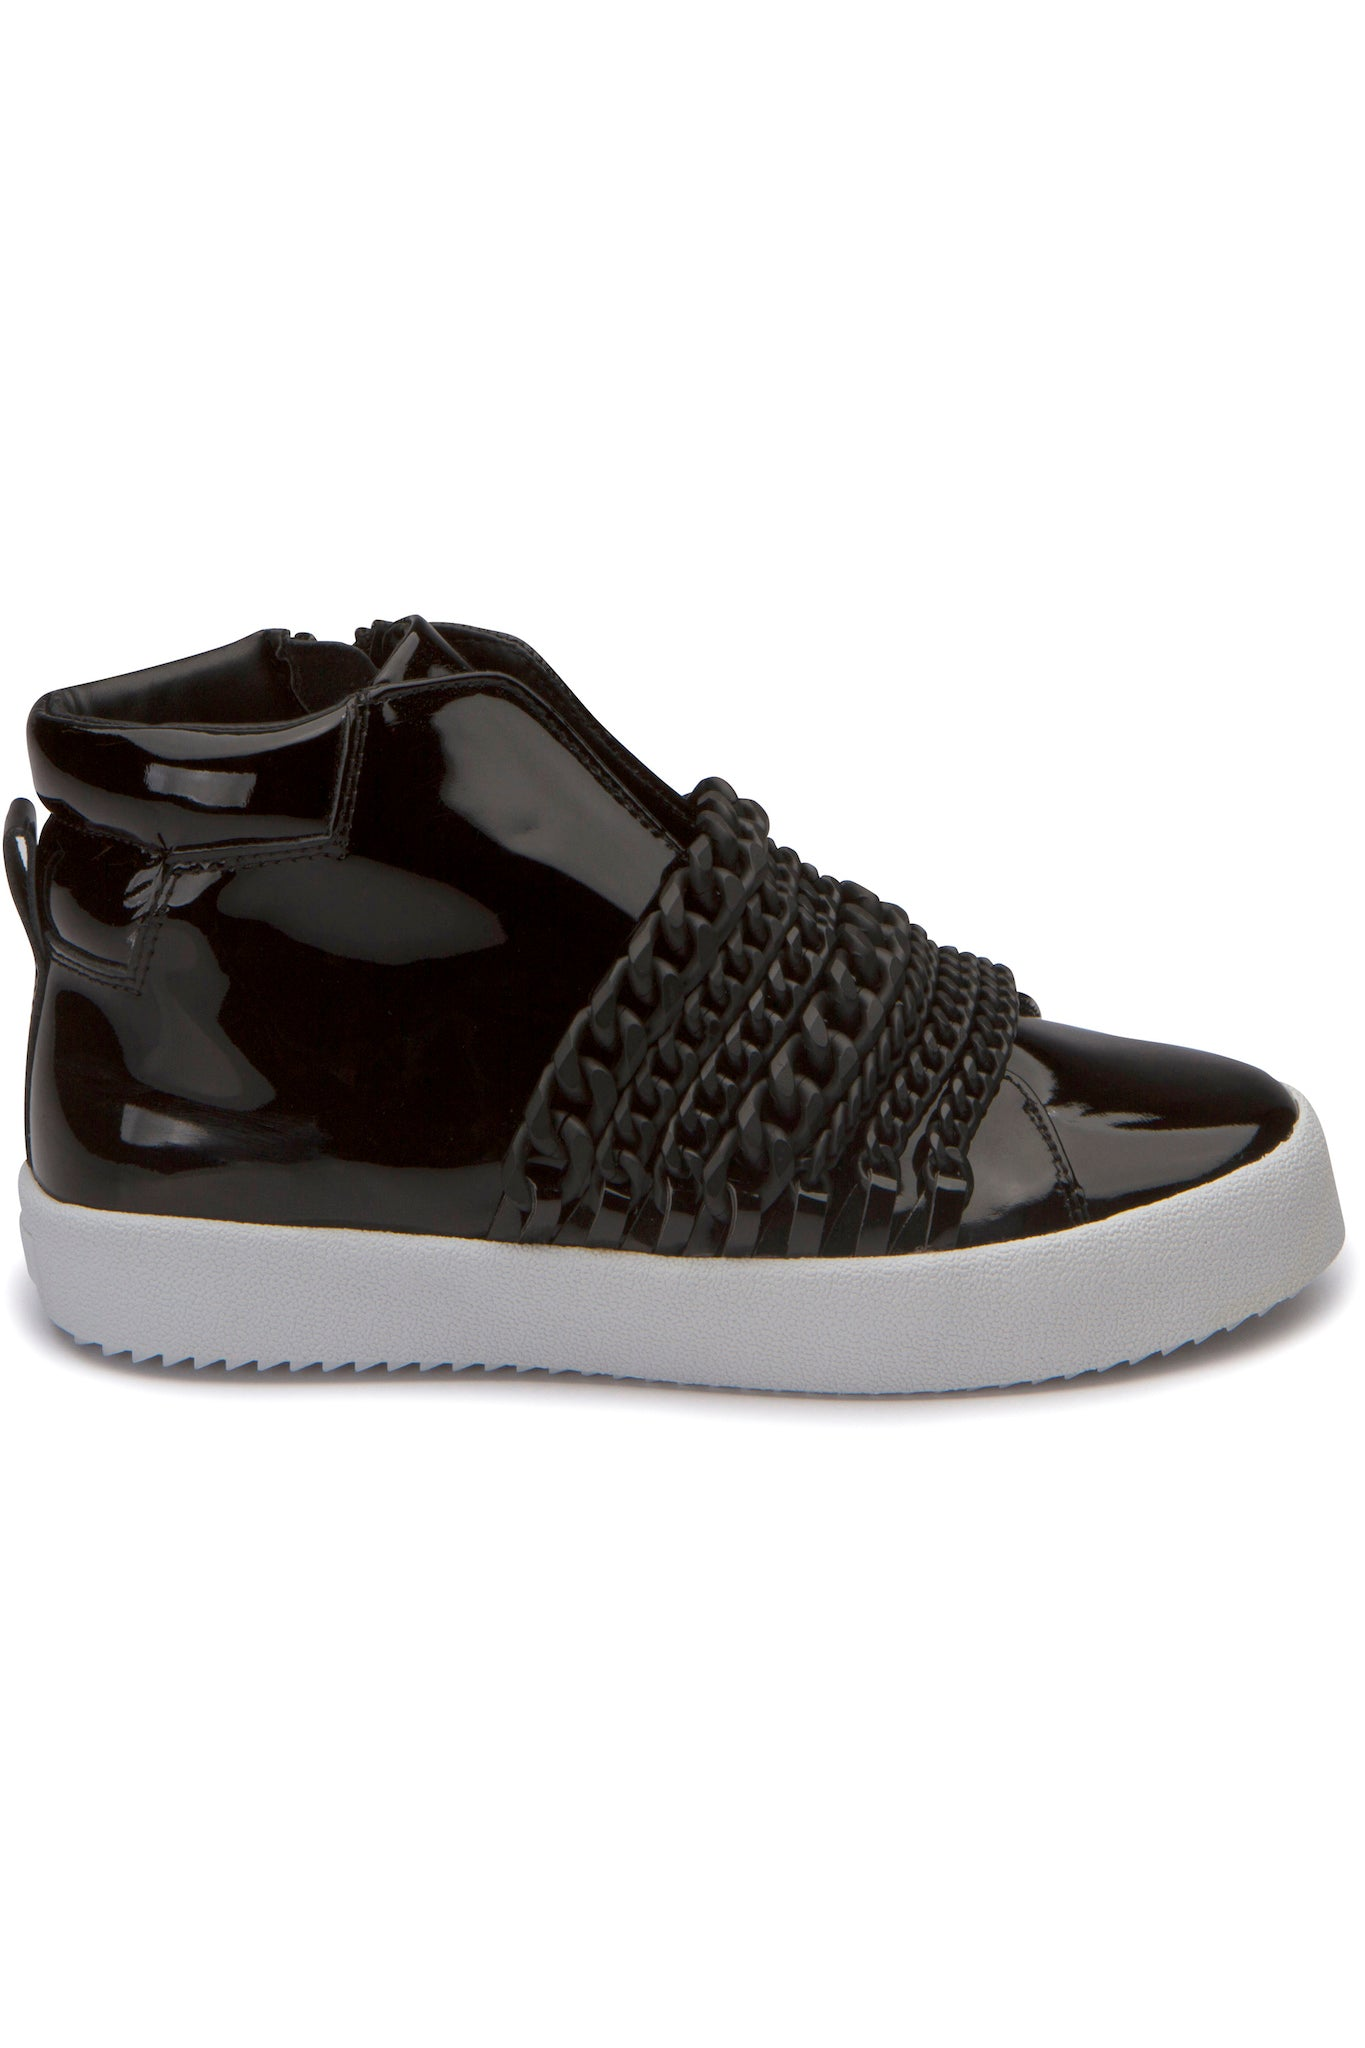 DUKE CHAIN HIGH TOPS SHOES by KENDALL + KYLIE